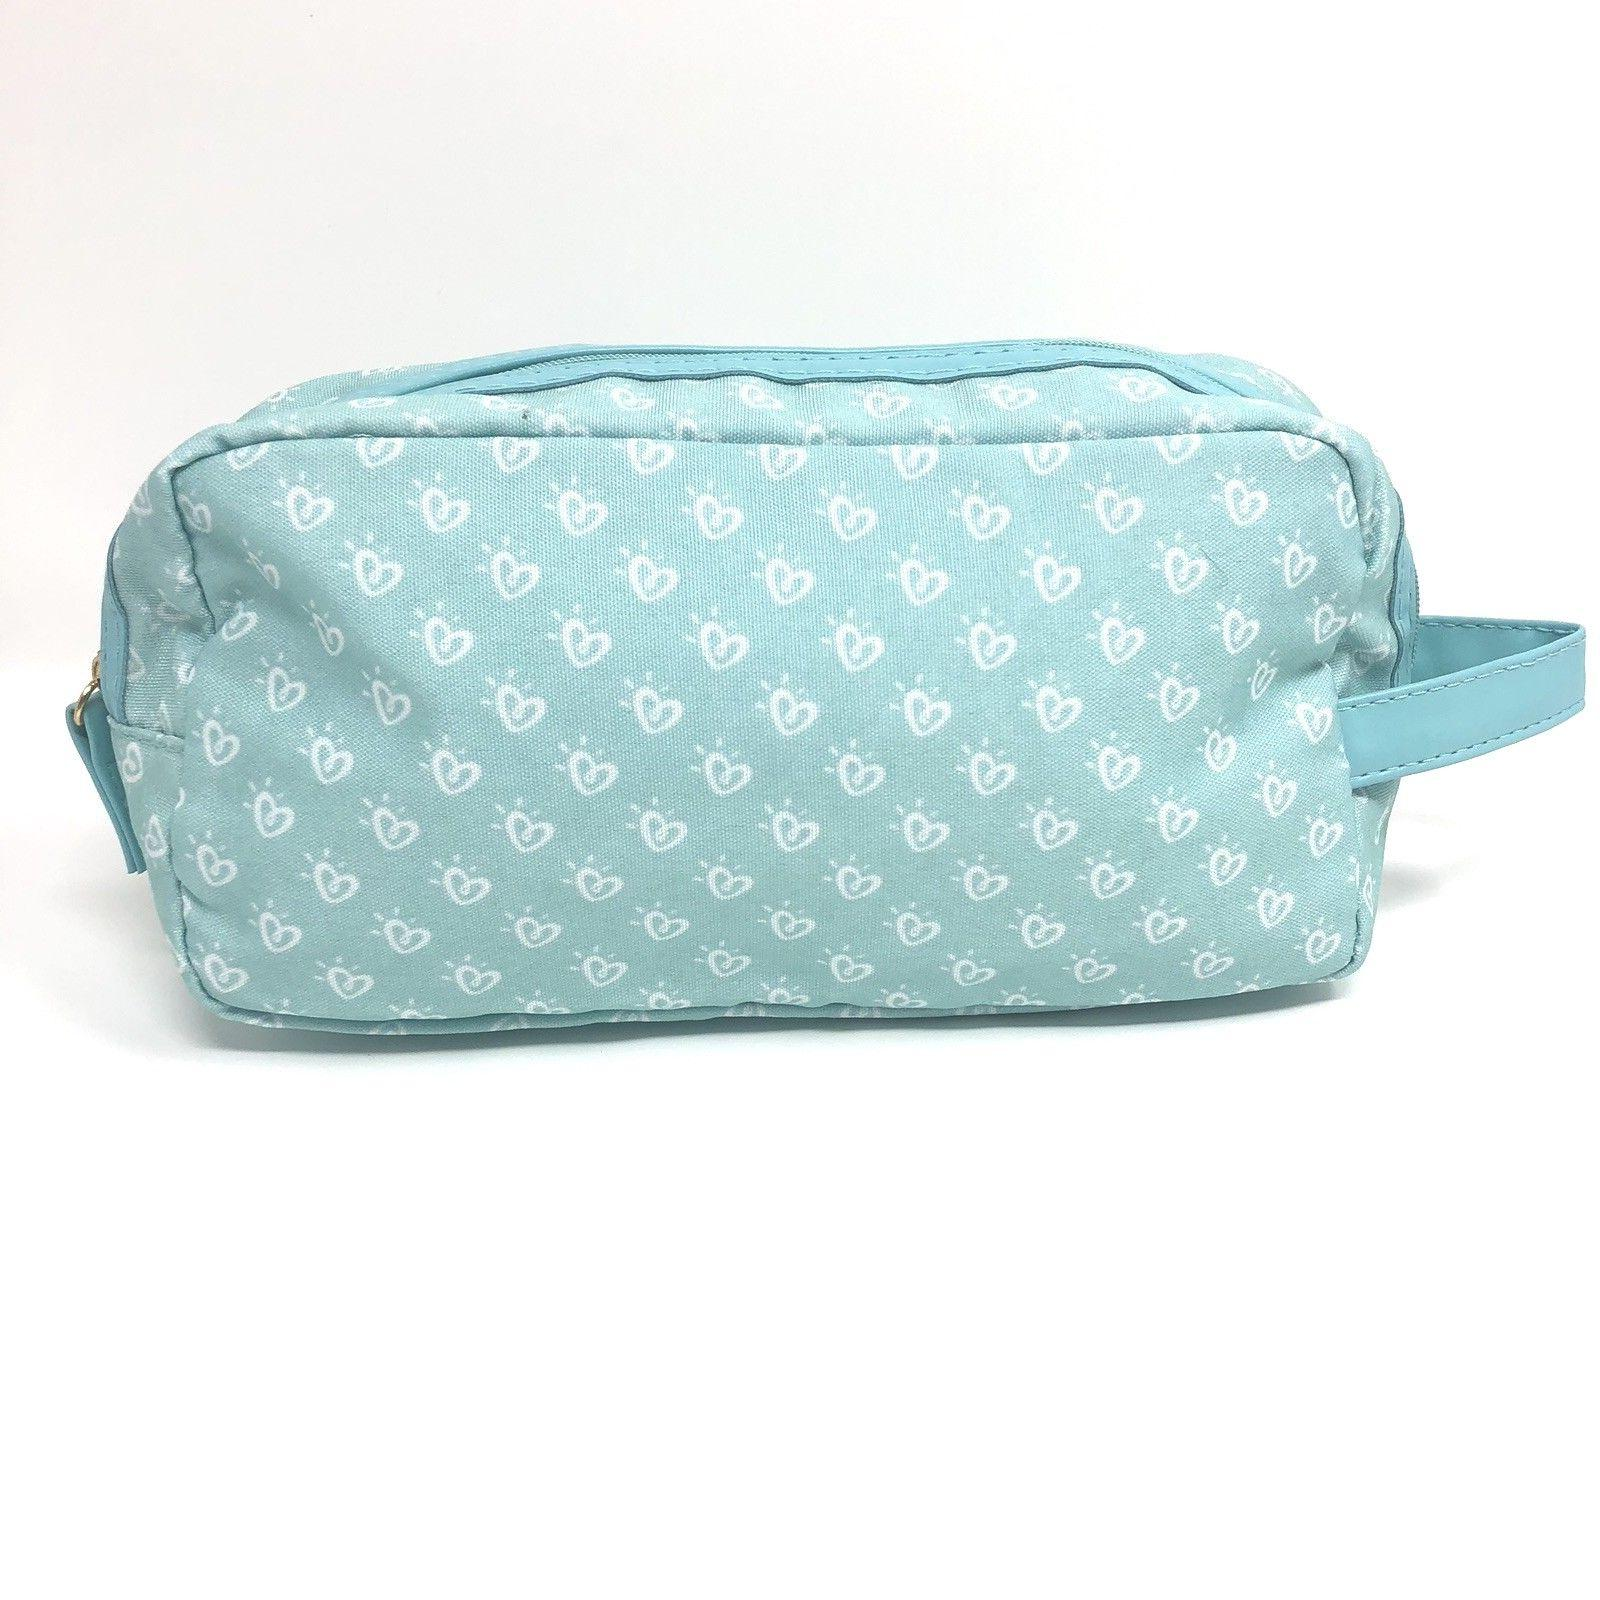 Pampers Travel Diaper Pouch Case